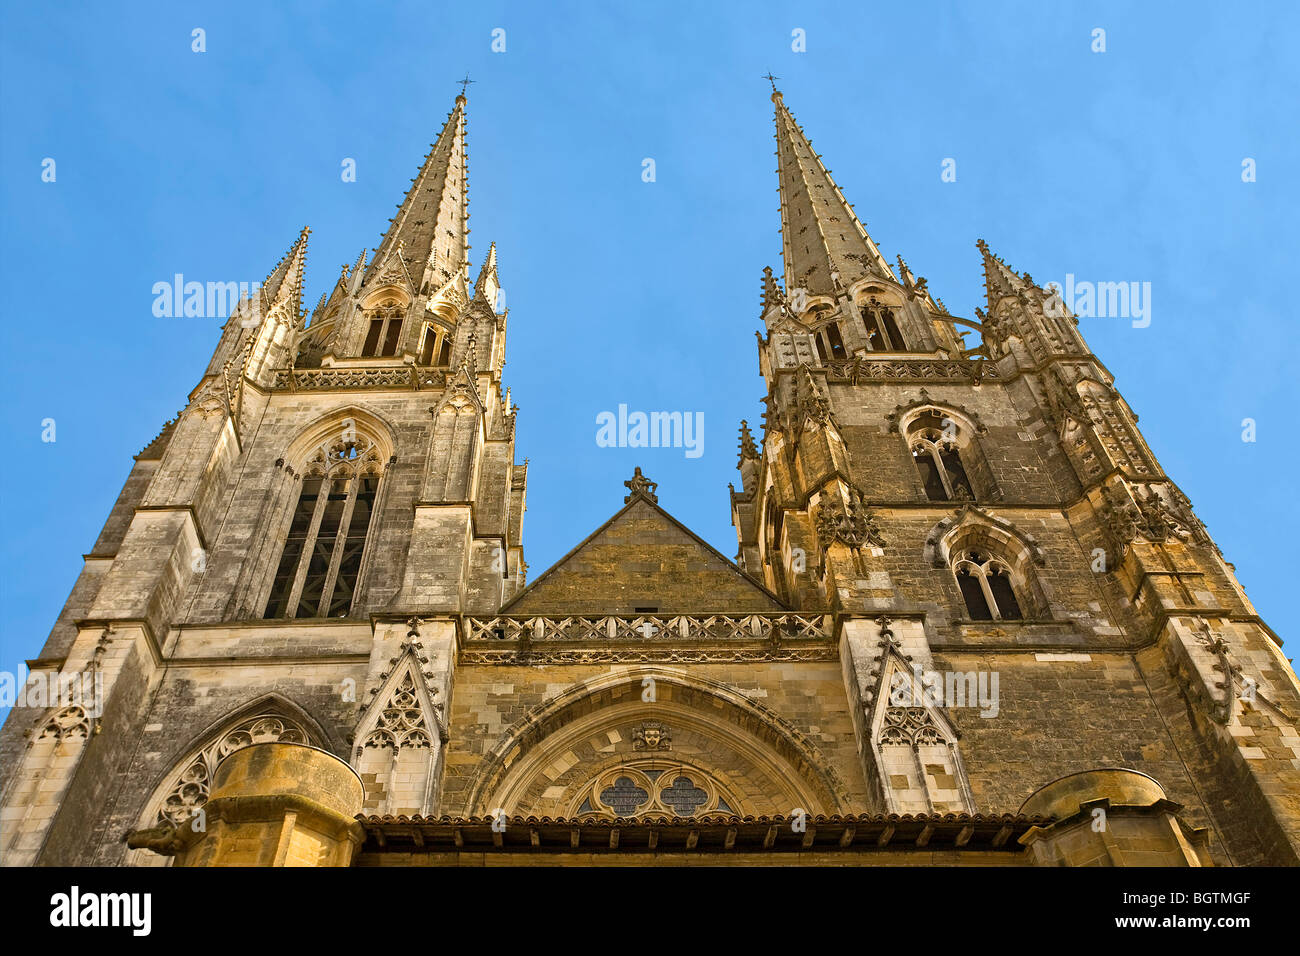 SAINTE-MARIE CATHEDRAL, BAYONNE Stock Photo